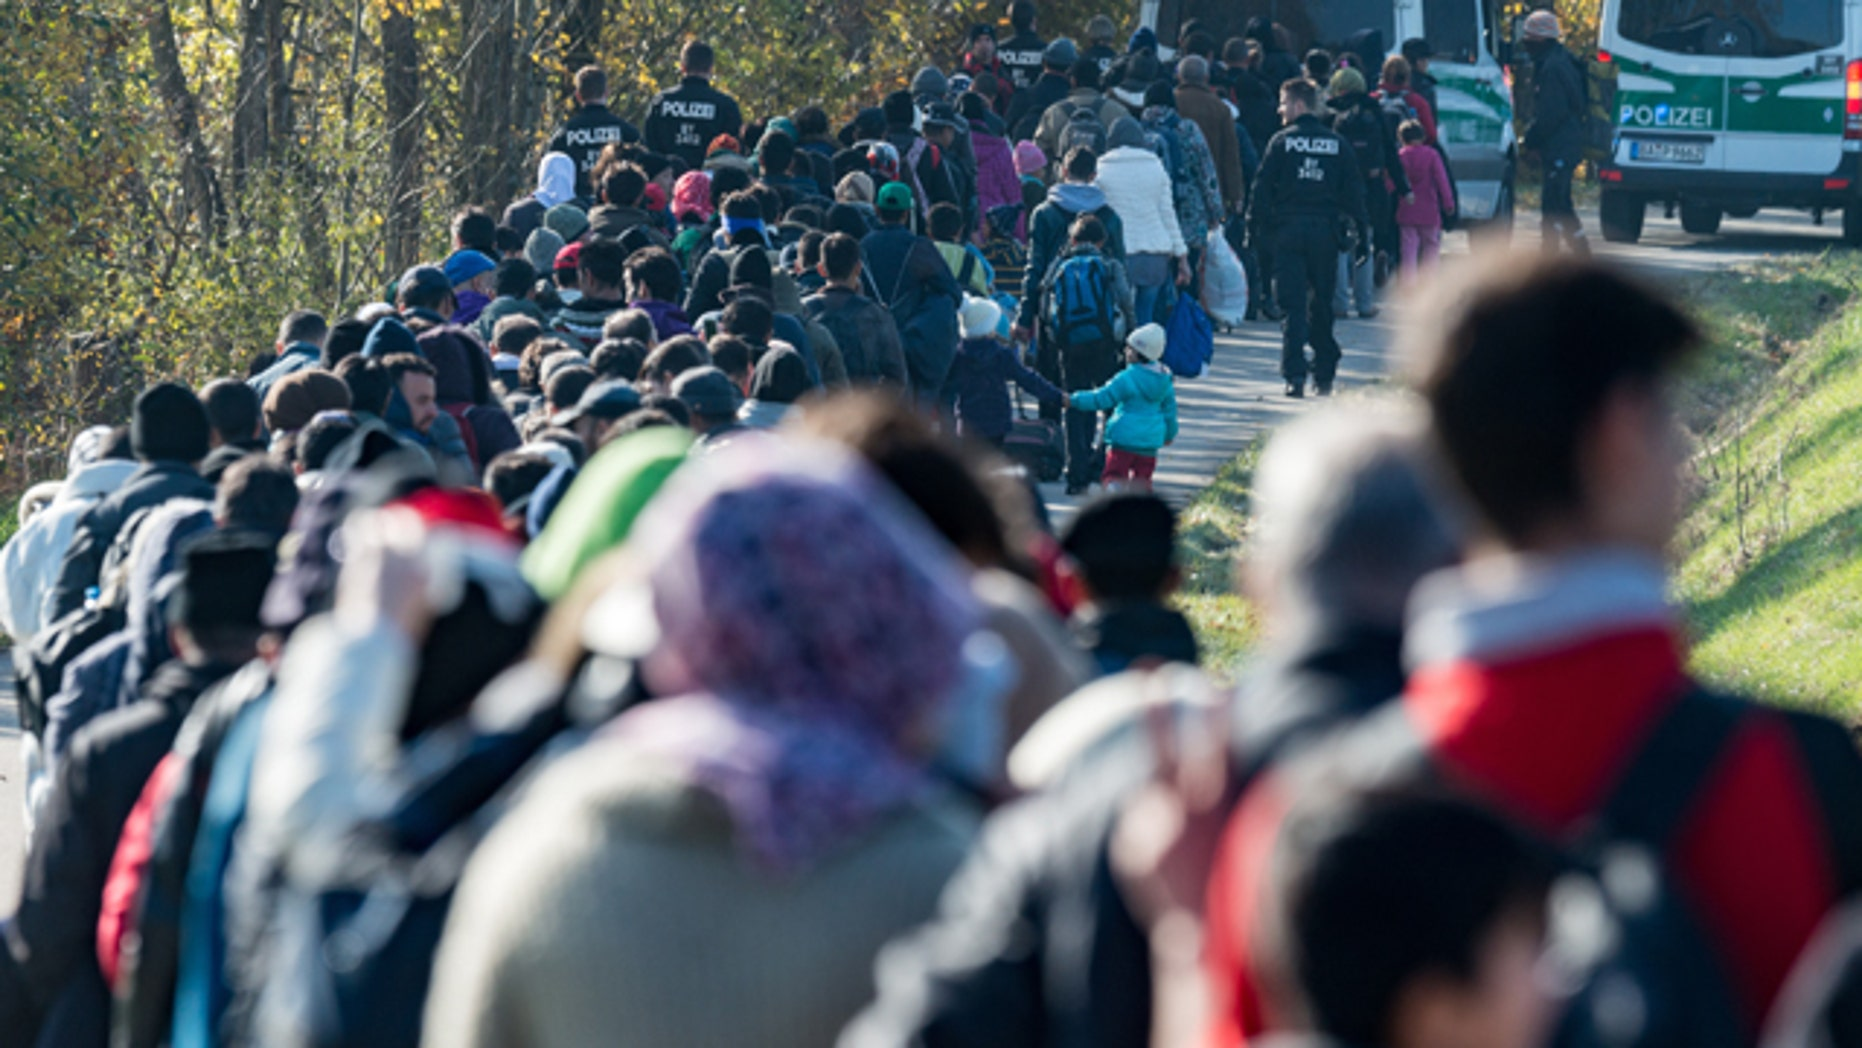 Oct. 27, 2015: Refugees are led by German Federal Police to an emergency accommodation center after crossing the Austrian-German border near Wegscheid, Germany. (Armin Weigel/dpa via AP)